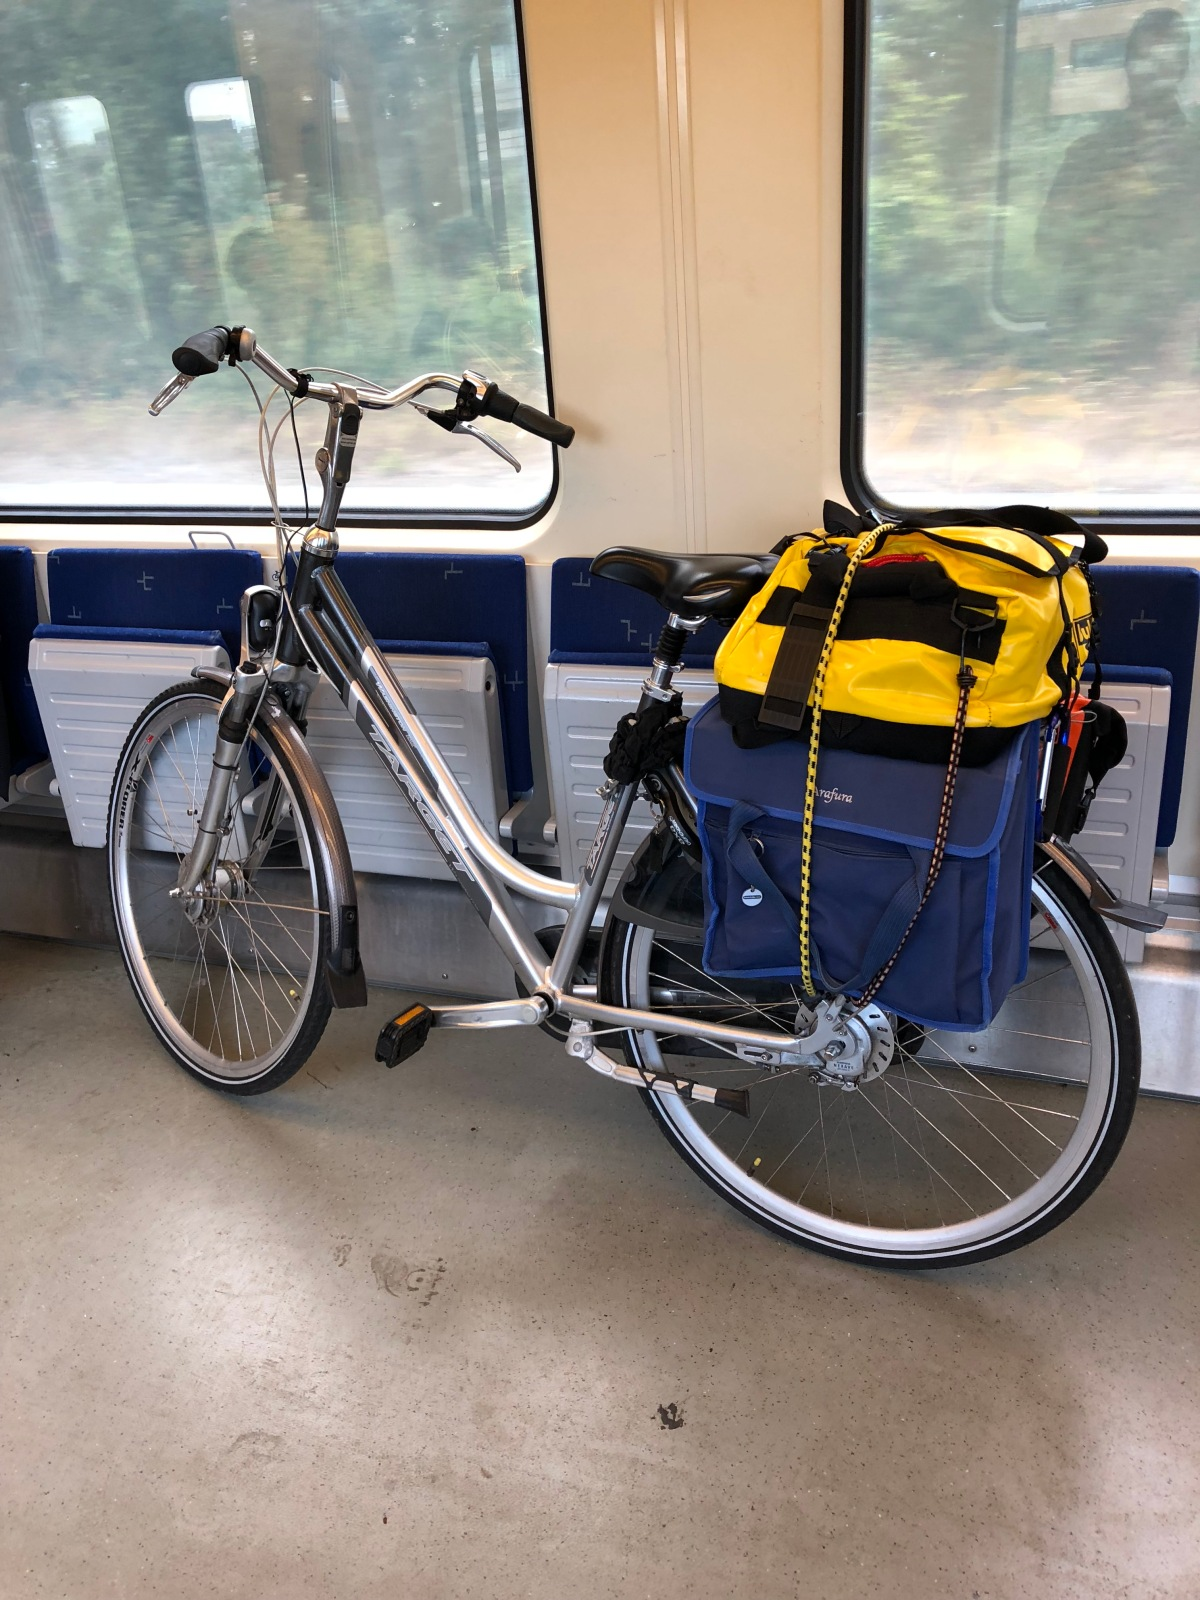 The loaded bike in the train heading for home